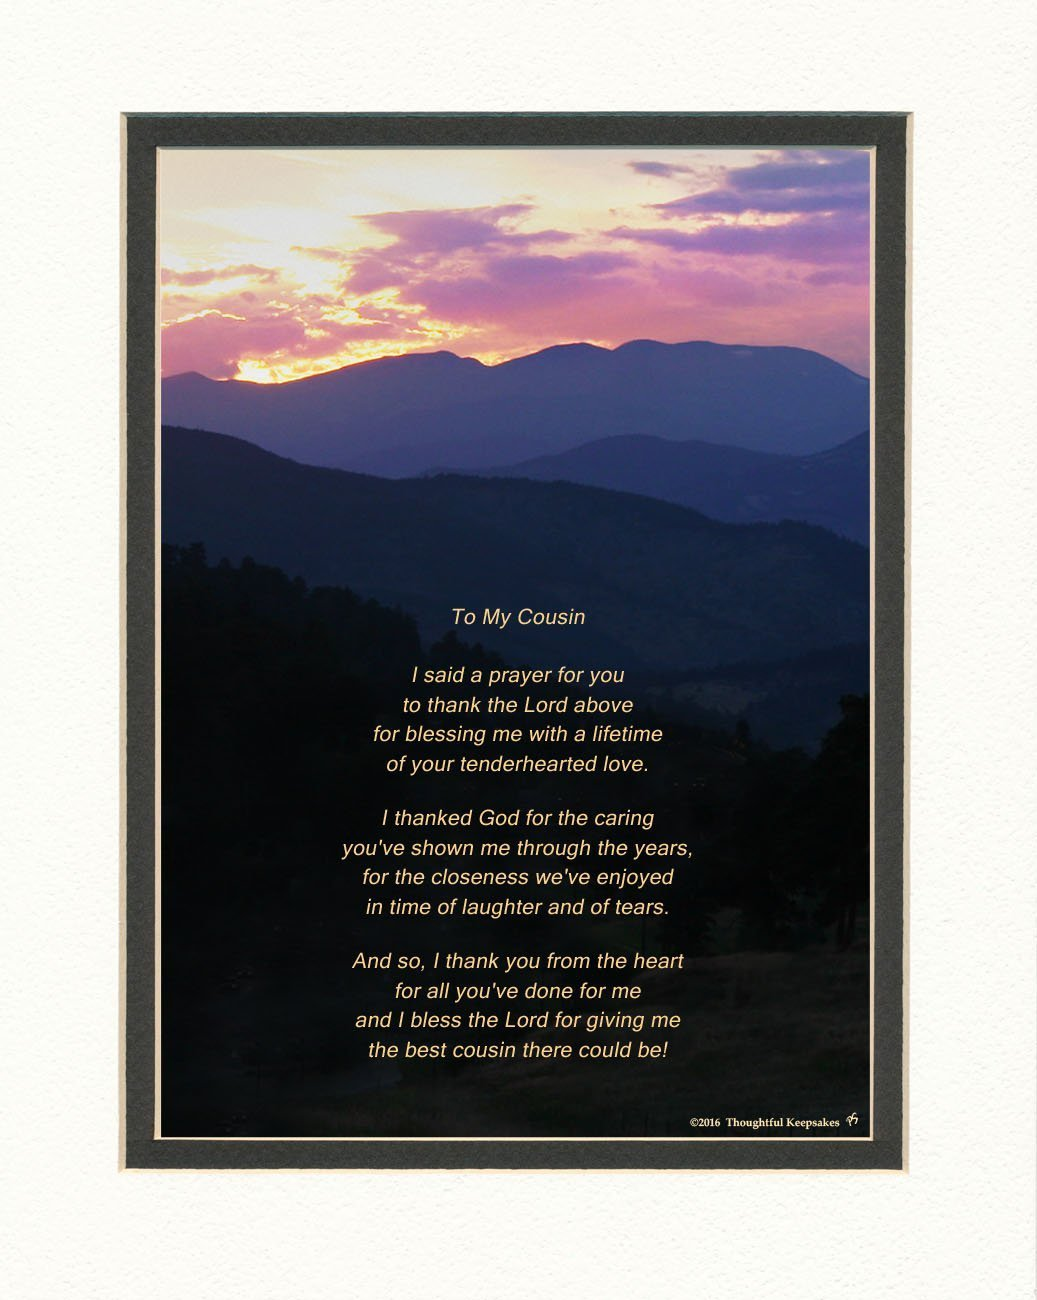 """Cousin Gift with """"Thank You Prayer for Best Cousin"""" Poem. Mts Sunset Photo, 8x10 Double Matted. Special Birthday, Christmas Gift for Cousin"""